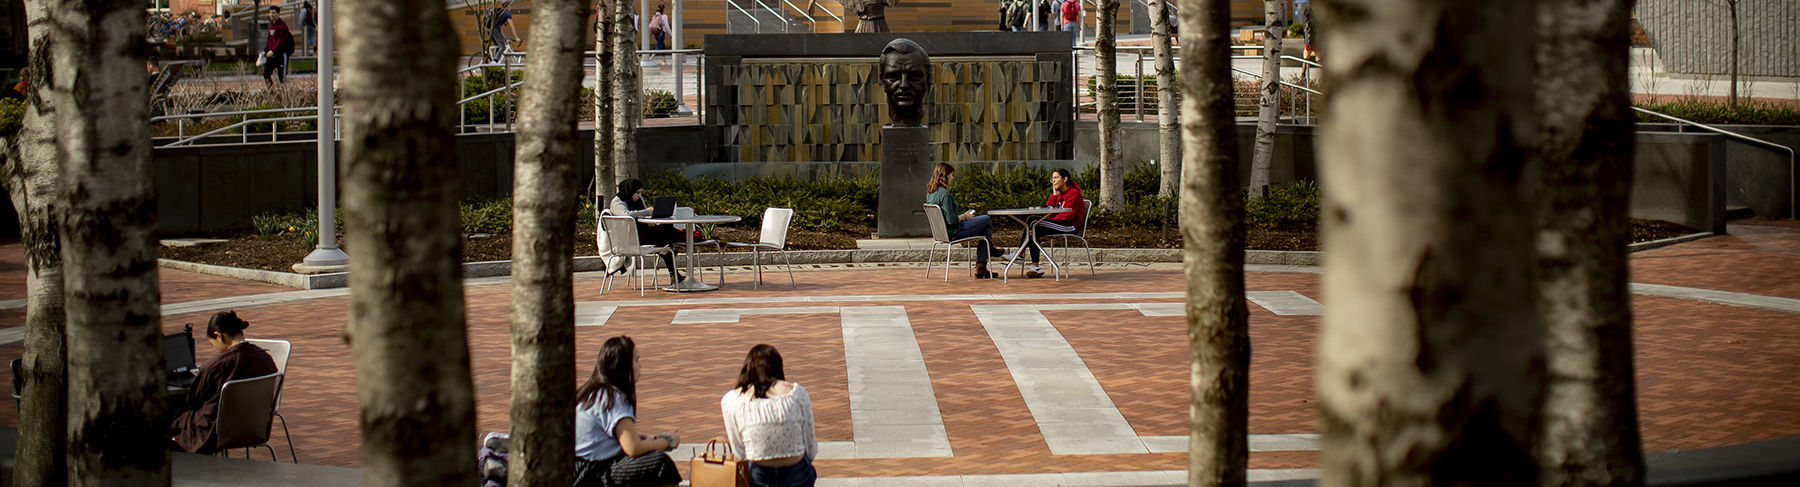 Students sitting in O Conner Plaza on a clear fall day